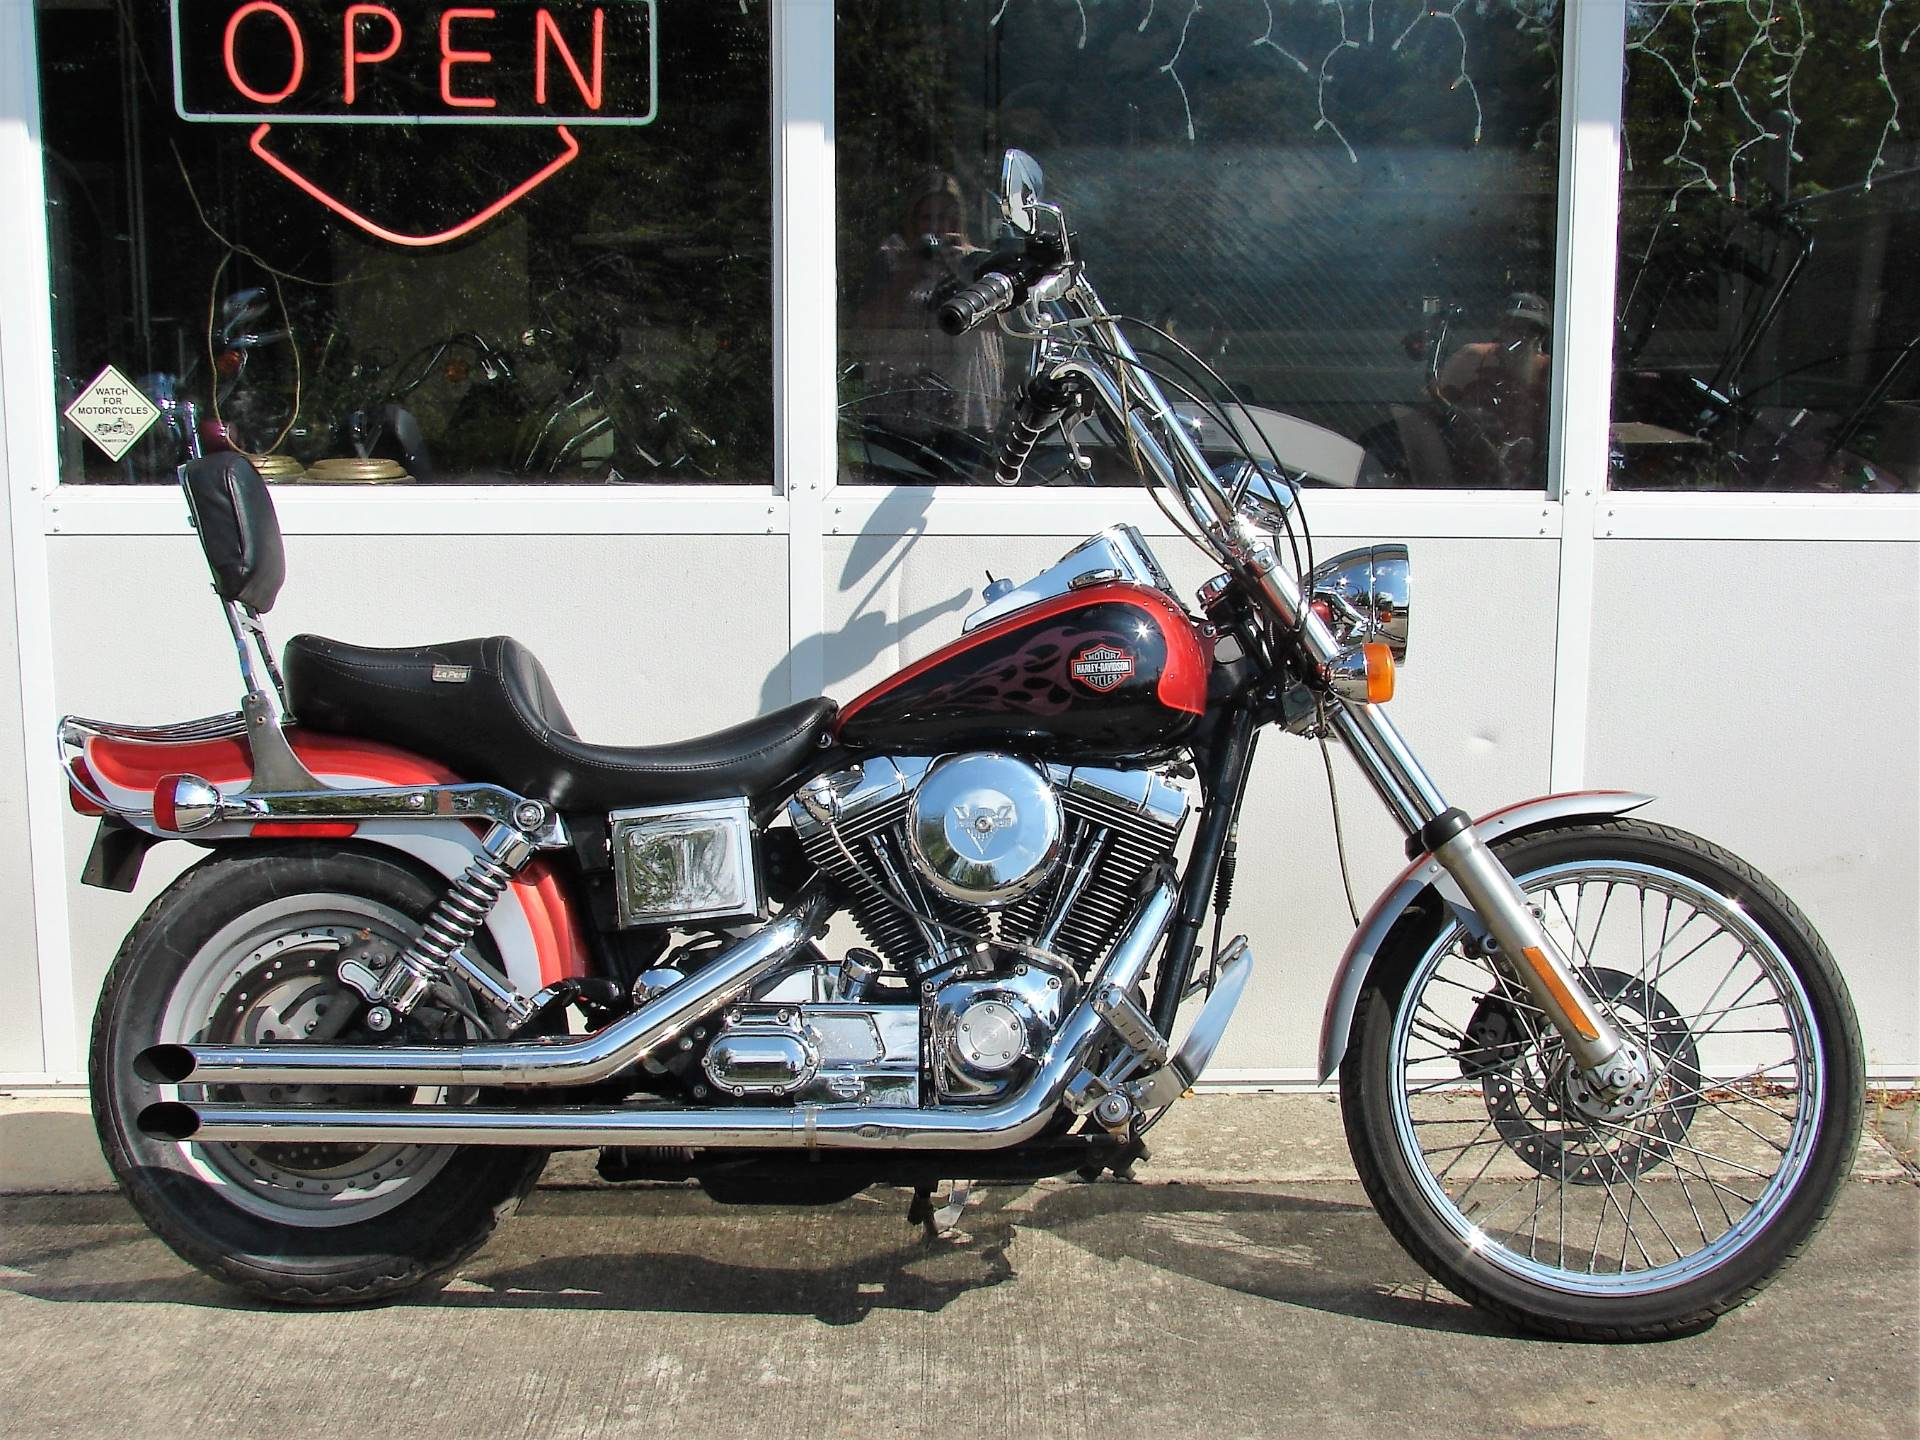 2000 Harley-Davidson FXDWG Dyna Wide Glide in Williamstown, New Jersey - Photo 1